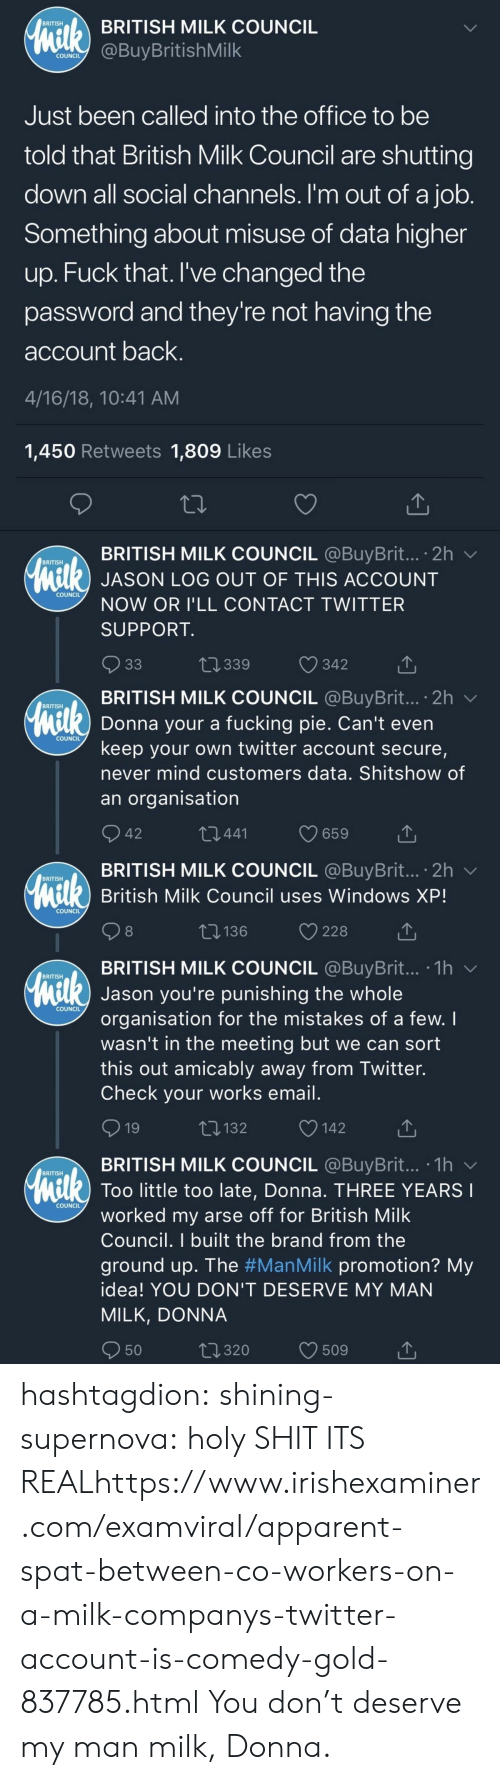 Ive Changed: BRITISH MILK COUNCIL  BRITISH  COundBuyBritishMilk  COUNCIL  Just been called into the office to be  told that British Milk Council are shutting  down all social channels. I'm out of a job  Something about misuse of data higher  up. Fuck that. I've changed the  password and they're not having the  account back  4/16/18, 10:41 AM  1,450 Retweets 1,809 Like:s  BRITISH MILK COUNCIL @BuyBrit...。2h ﹀  BRITISH  l) JASON LOG OUT OF THIS ACCOUNT  COUNCIL  NOW OR I'LL CONTACT TWITTER  SUPPORT  t 339  342   . BRITISH MILK COUNCIL @BuyBrit...。2h ﹀  BRITISH  Donna your a fucking pie. Can't even  keep your own twitter account secure,  never mind customers data. Shitshow of  an organisation  COUNCIL  42  441  BRITISH MILK COUNCIL @BuyBrit... 2h v  British Milk Council uses Windows XP!  BRITISH  COUNCIL  8  t: 136  228  TBRITISH MILK COUNCIL @BuyBrit... .1hv  BRITISH  Jason you're punishing the whole  organisation for the mistakes of a few. I  wasn't in the meeting but we can sort  this out amicably away from Twitter.  Check your works email  COUNCIL  132  142  BRITISH MILK COUNCIL @BuyBrit...-1h  BRITISH  Too little too late, Donna. THREE YEARS  COUNCIL  worked my arse off for British Milk  Council. I built the brand from the  ground up. The #ManMilk promotion? My  idea! YOU DON'T DESERVE MY MAN  MILK, DONNA  50  320  509 hashtagdion:  shining-supernova:  holy SHIT ITS REALhttps://www.irishexaminer.com/examviral/apparent-spat-between-co-workers-on-a-milk-companys-twitter-account-is-comedy-gold-837785.html  You don't deserve my man milk, Donna.